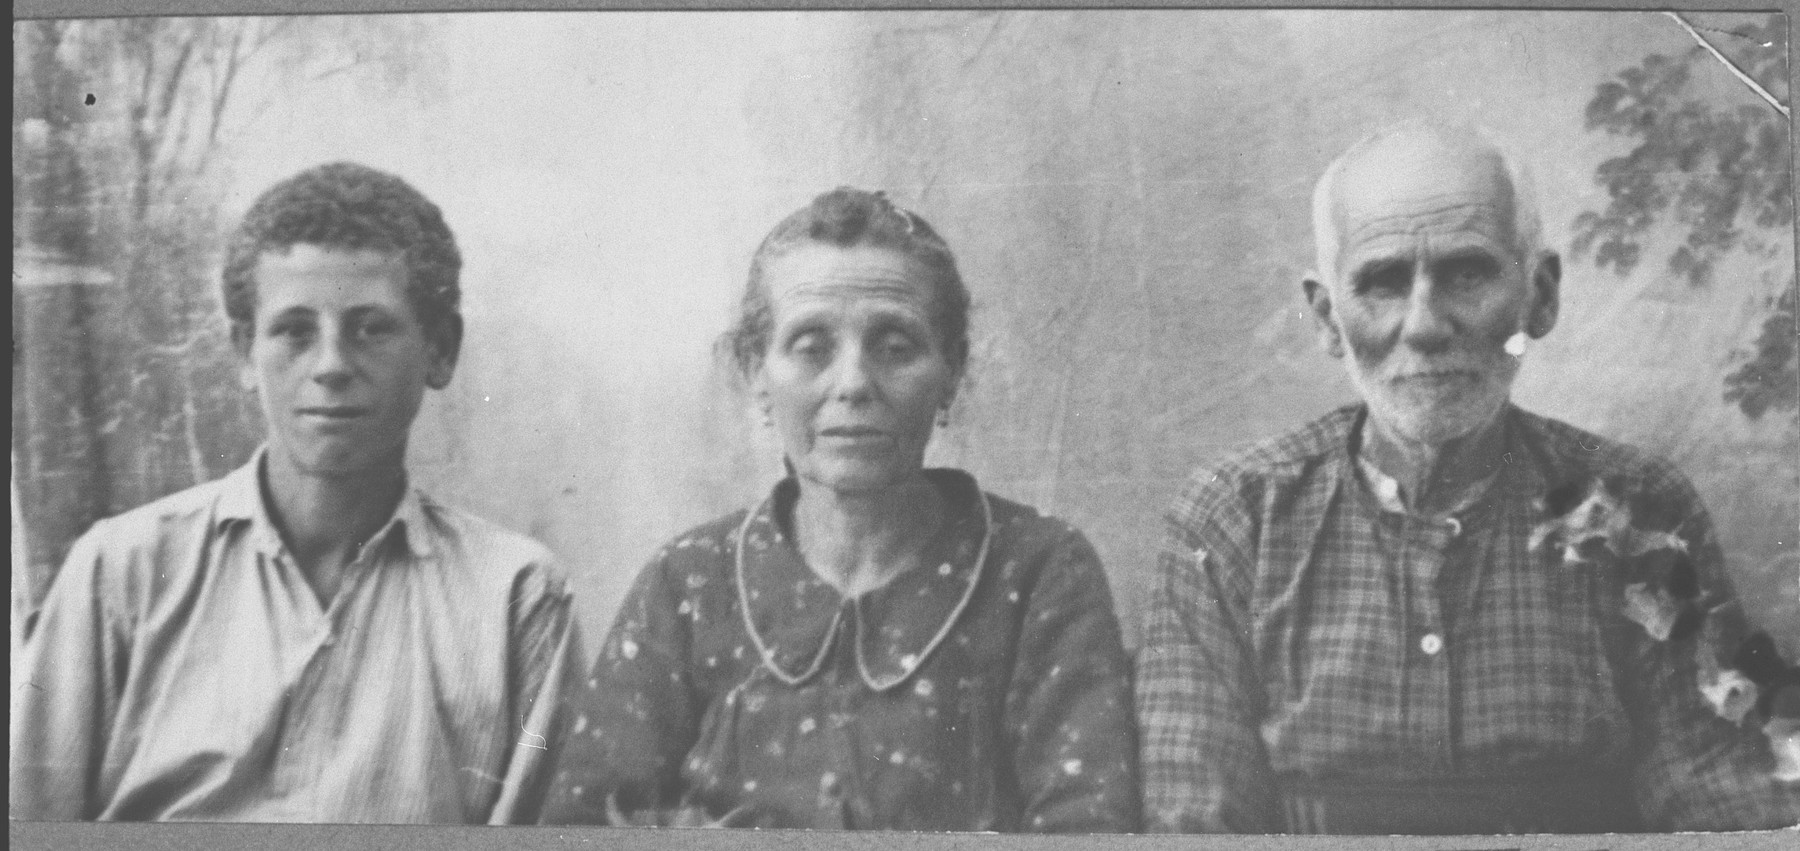 Portrait of Saba Ergas, his wife, Reina, and his son, Menachem.  Saba was a broommaker and Menachem, a student.  They lived at Karagoryeva 83 in Bitola.